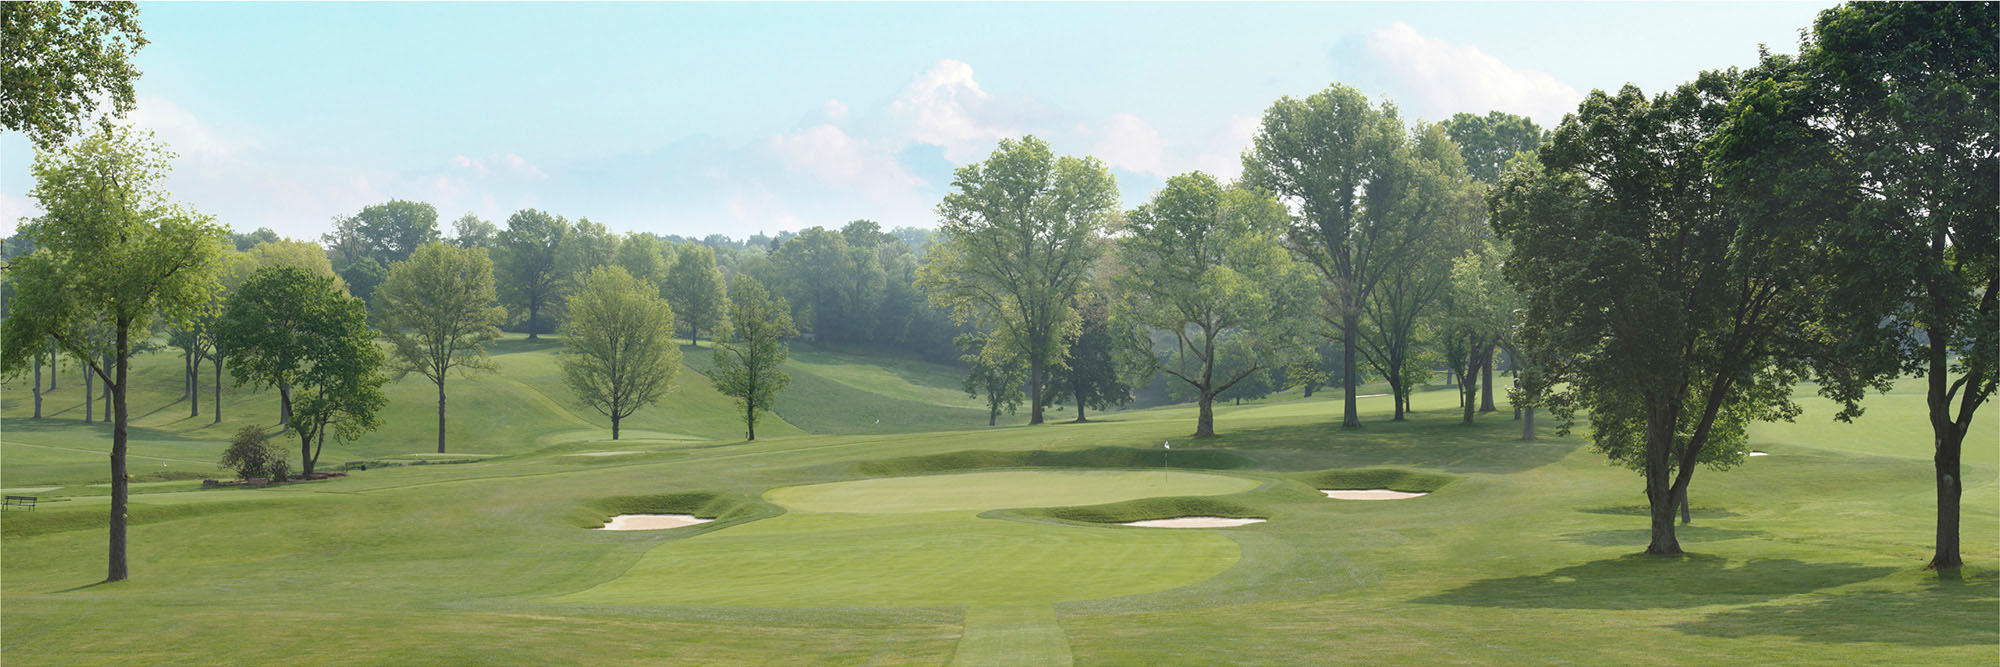 Golf Course Image - Pittsburgh Field Club No. 6